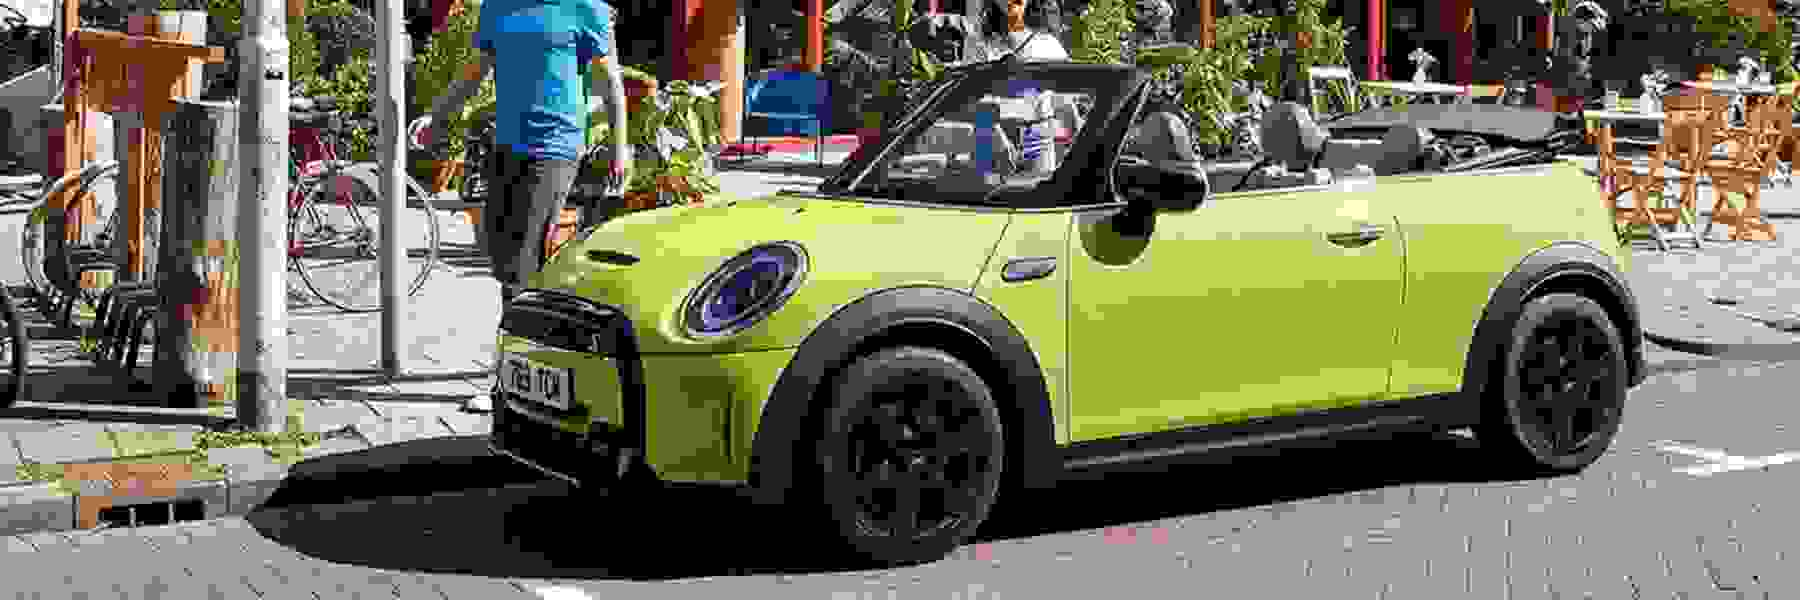 THE UPDATED MINI CONVERTIBLE